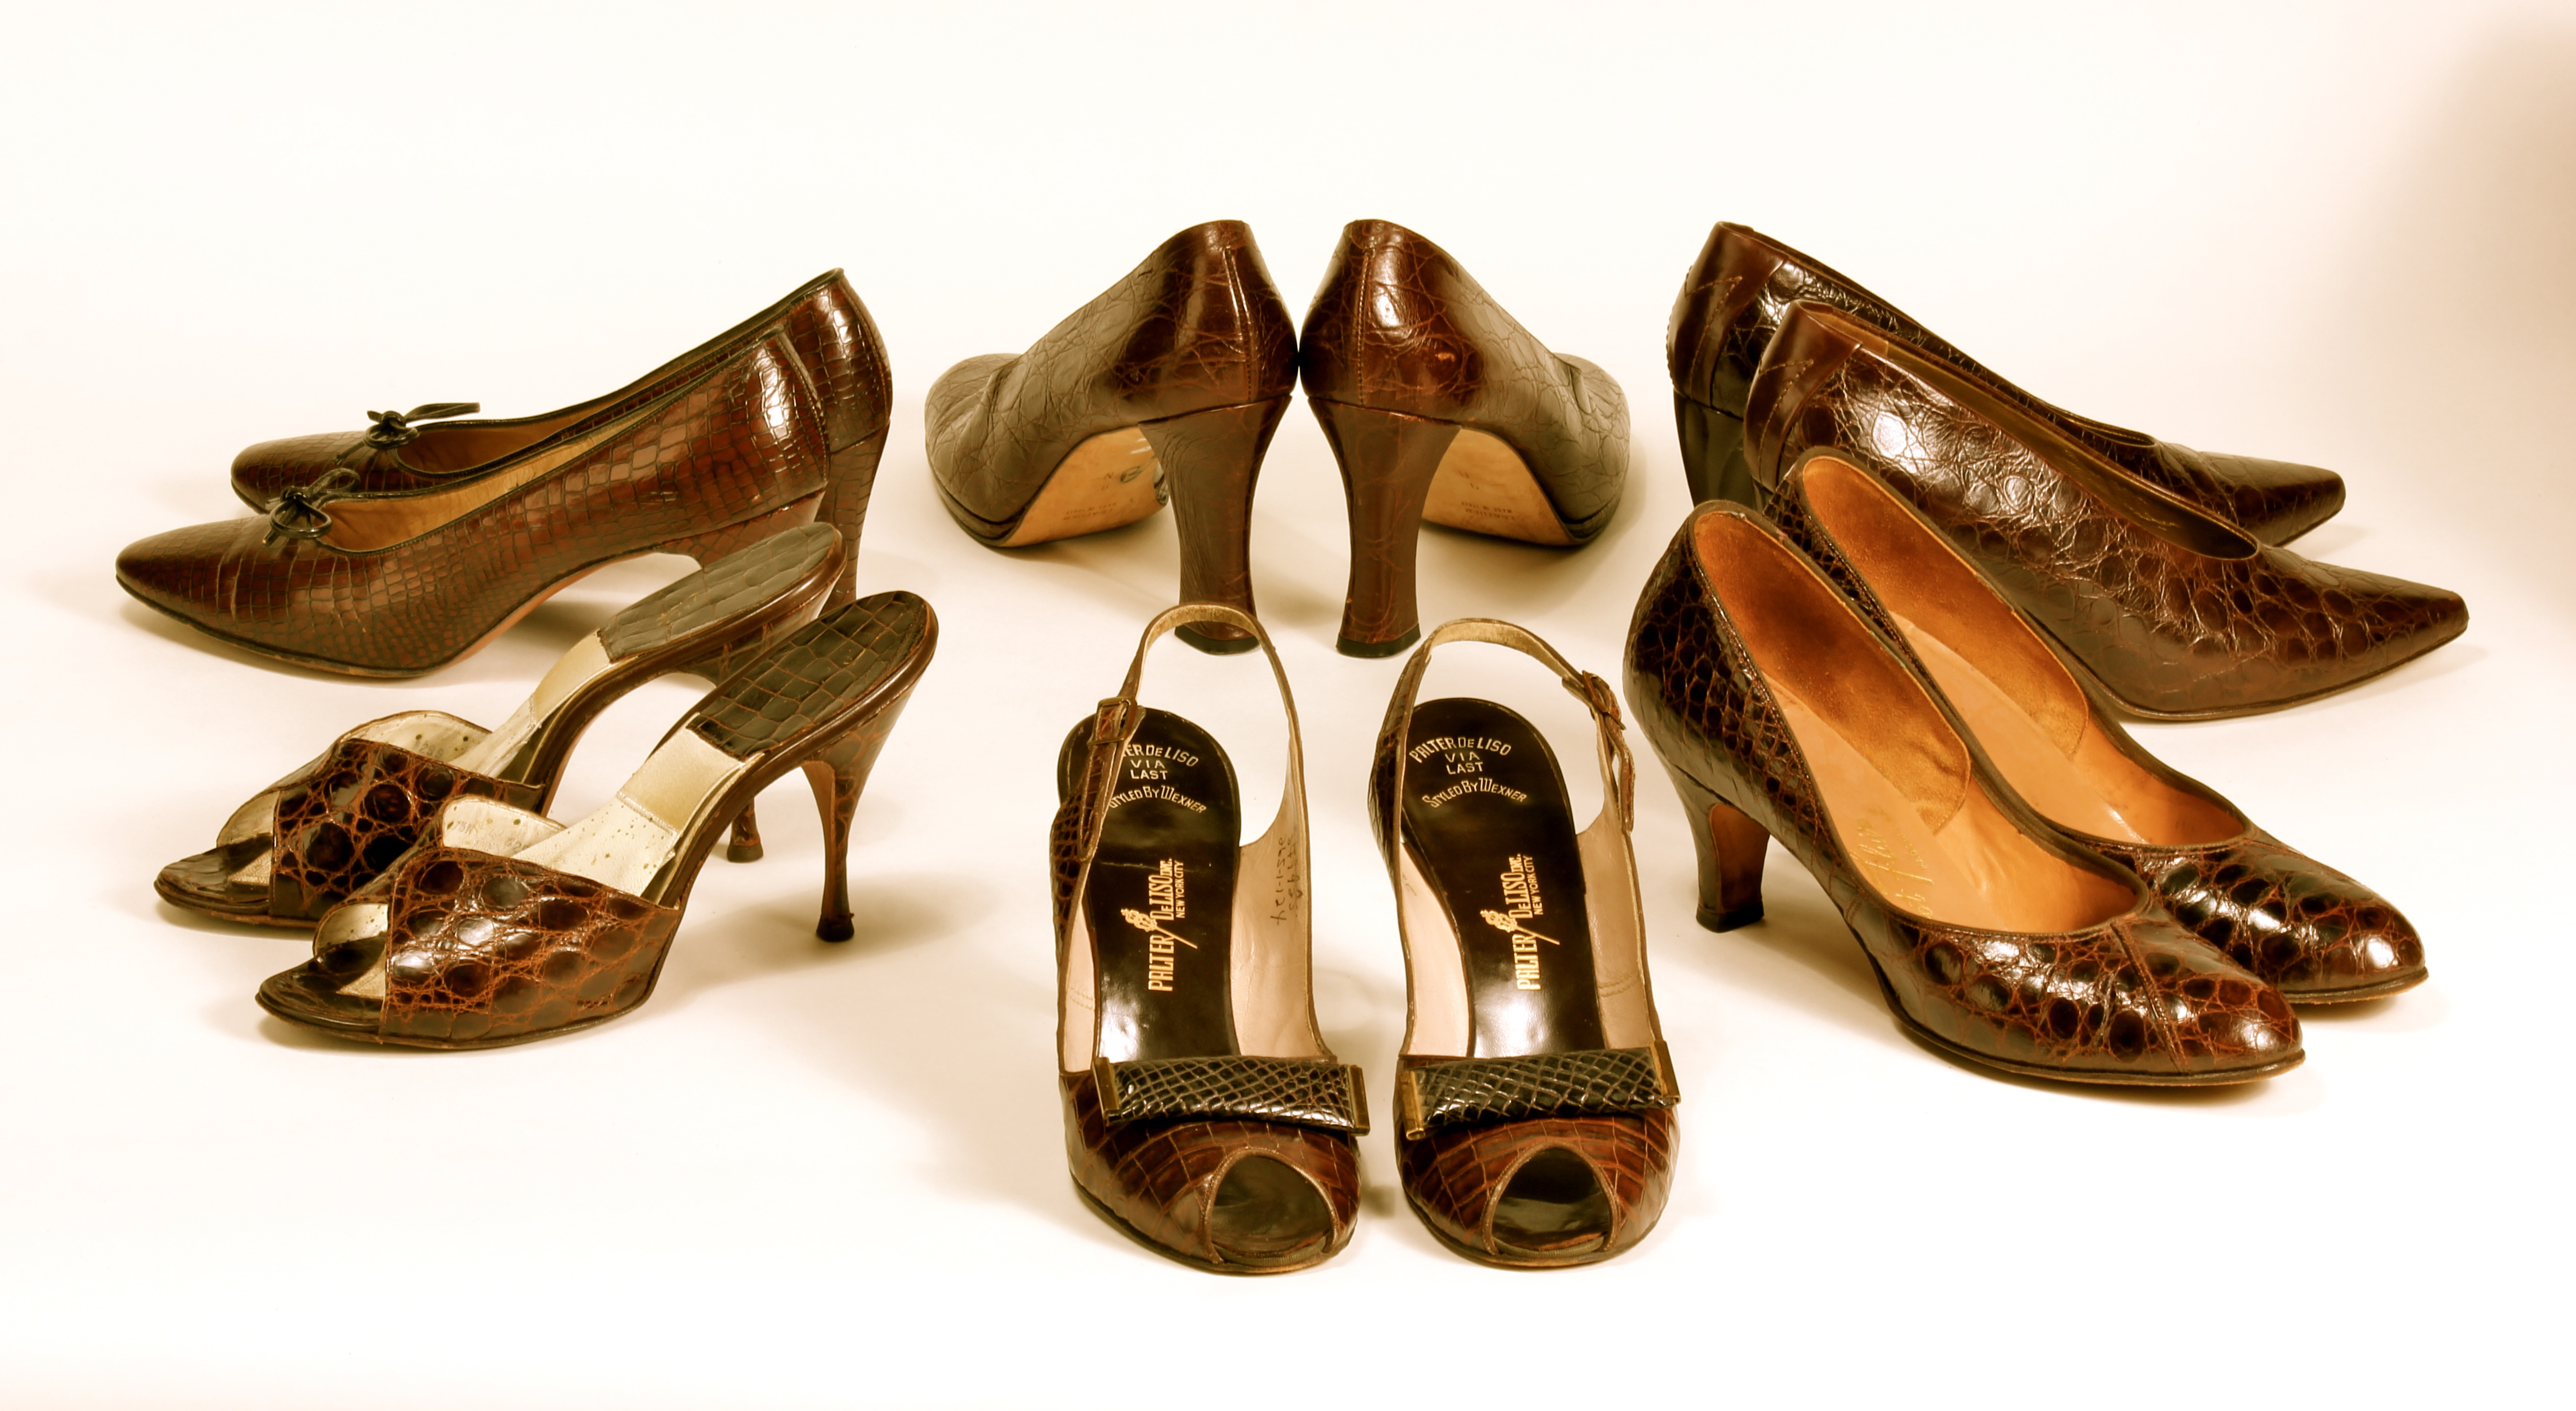 Treasures Vintage Alligator Shoes in the Lady Violette Shoe Collection